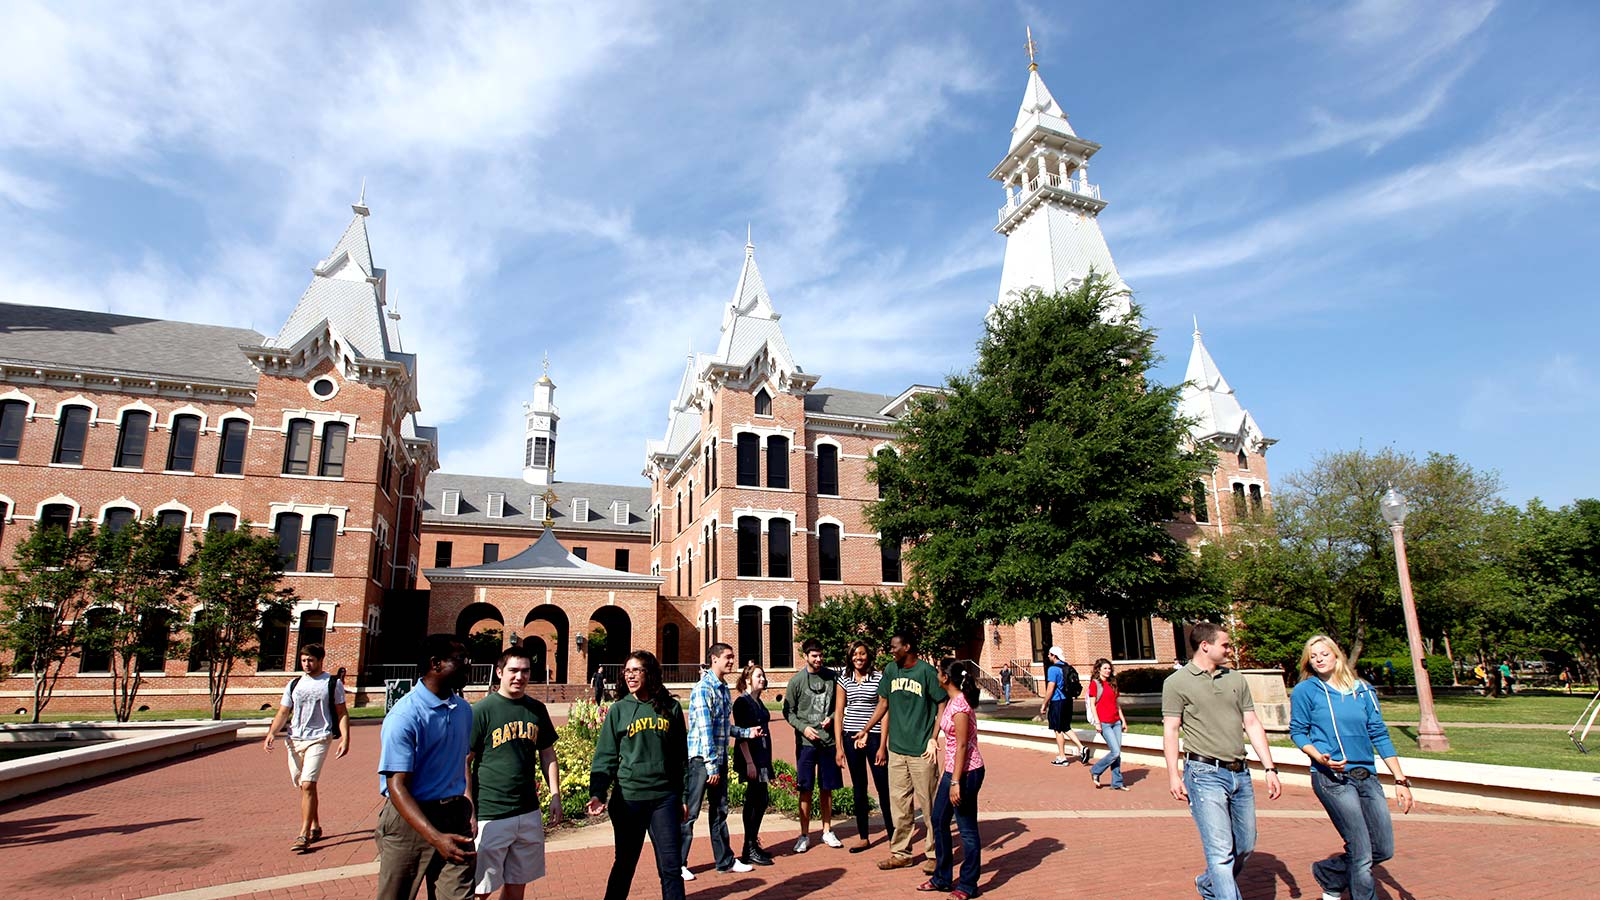 Students gather in the Burleson Quadrangle near the heart of Baylor's campus.